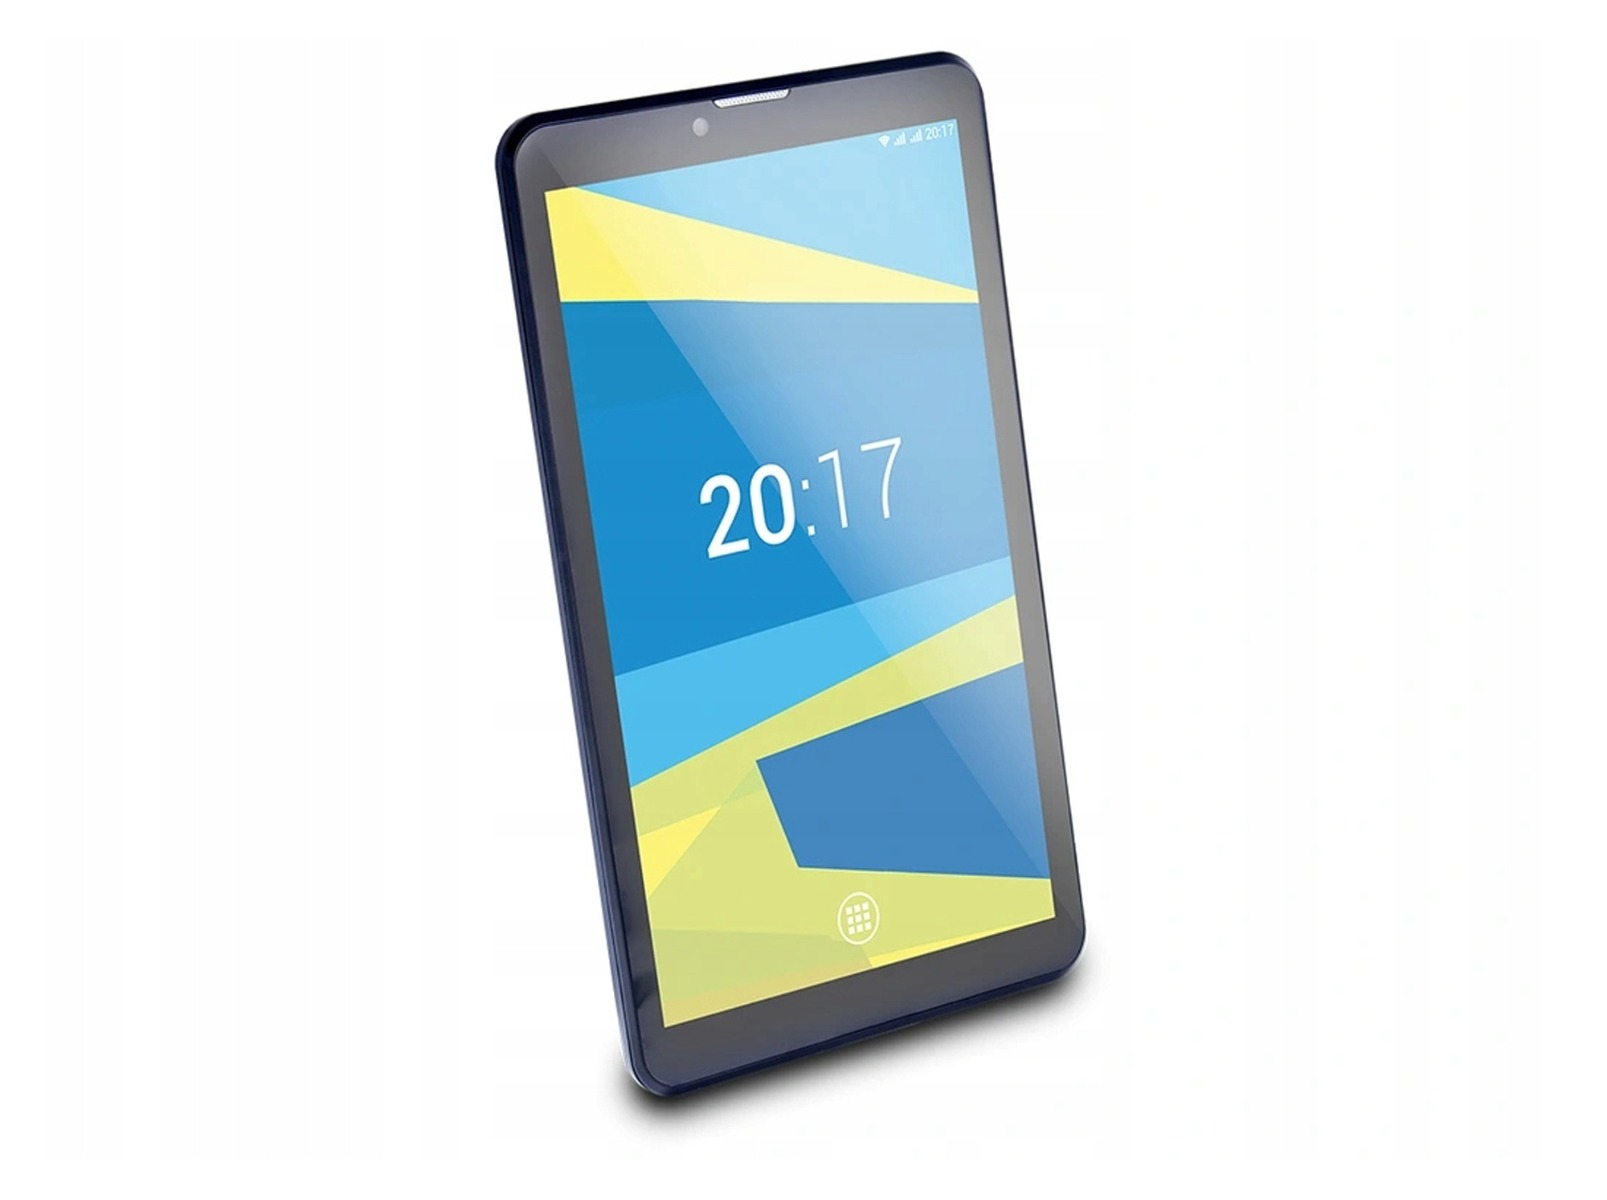 Tablet Overmax Qualcore 7023 3G